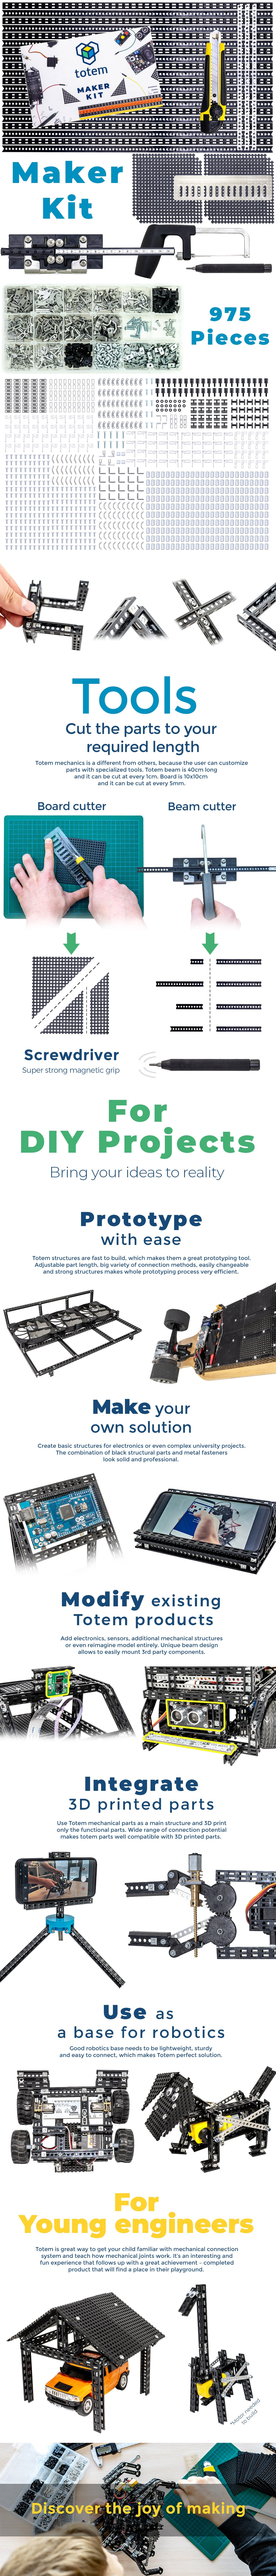 Medium-maker-kit-product-page-infograph